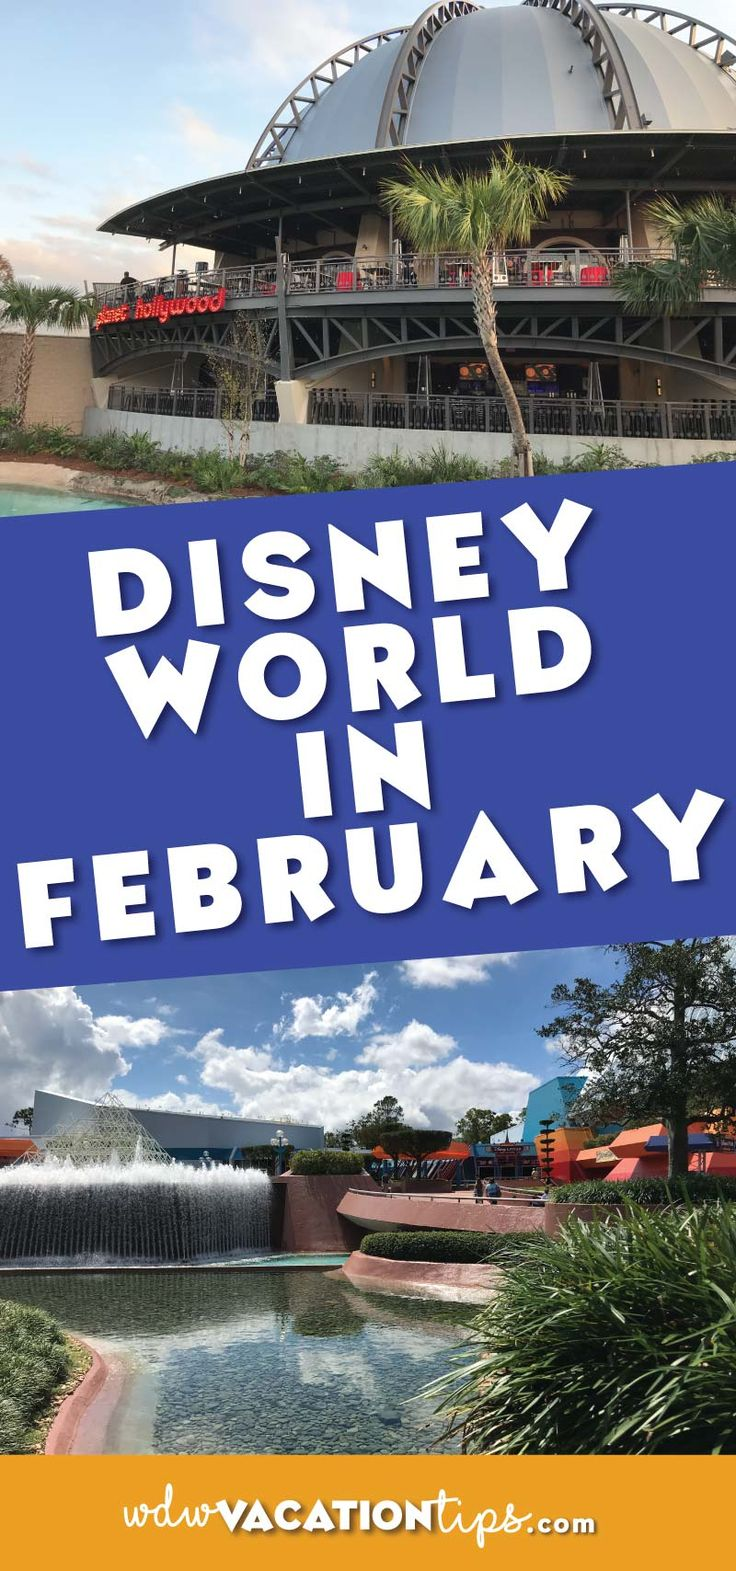 Many first time visitors, new to long hours at Disney parks or new to Orlando itself, often wonder what to wear to Disney World in the late fall, early winter. Come .